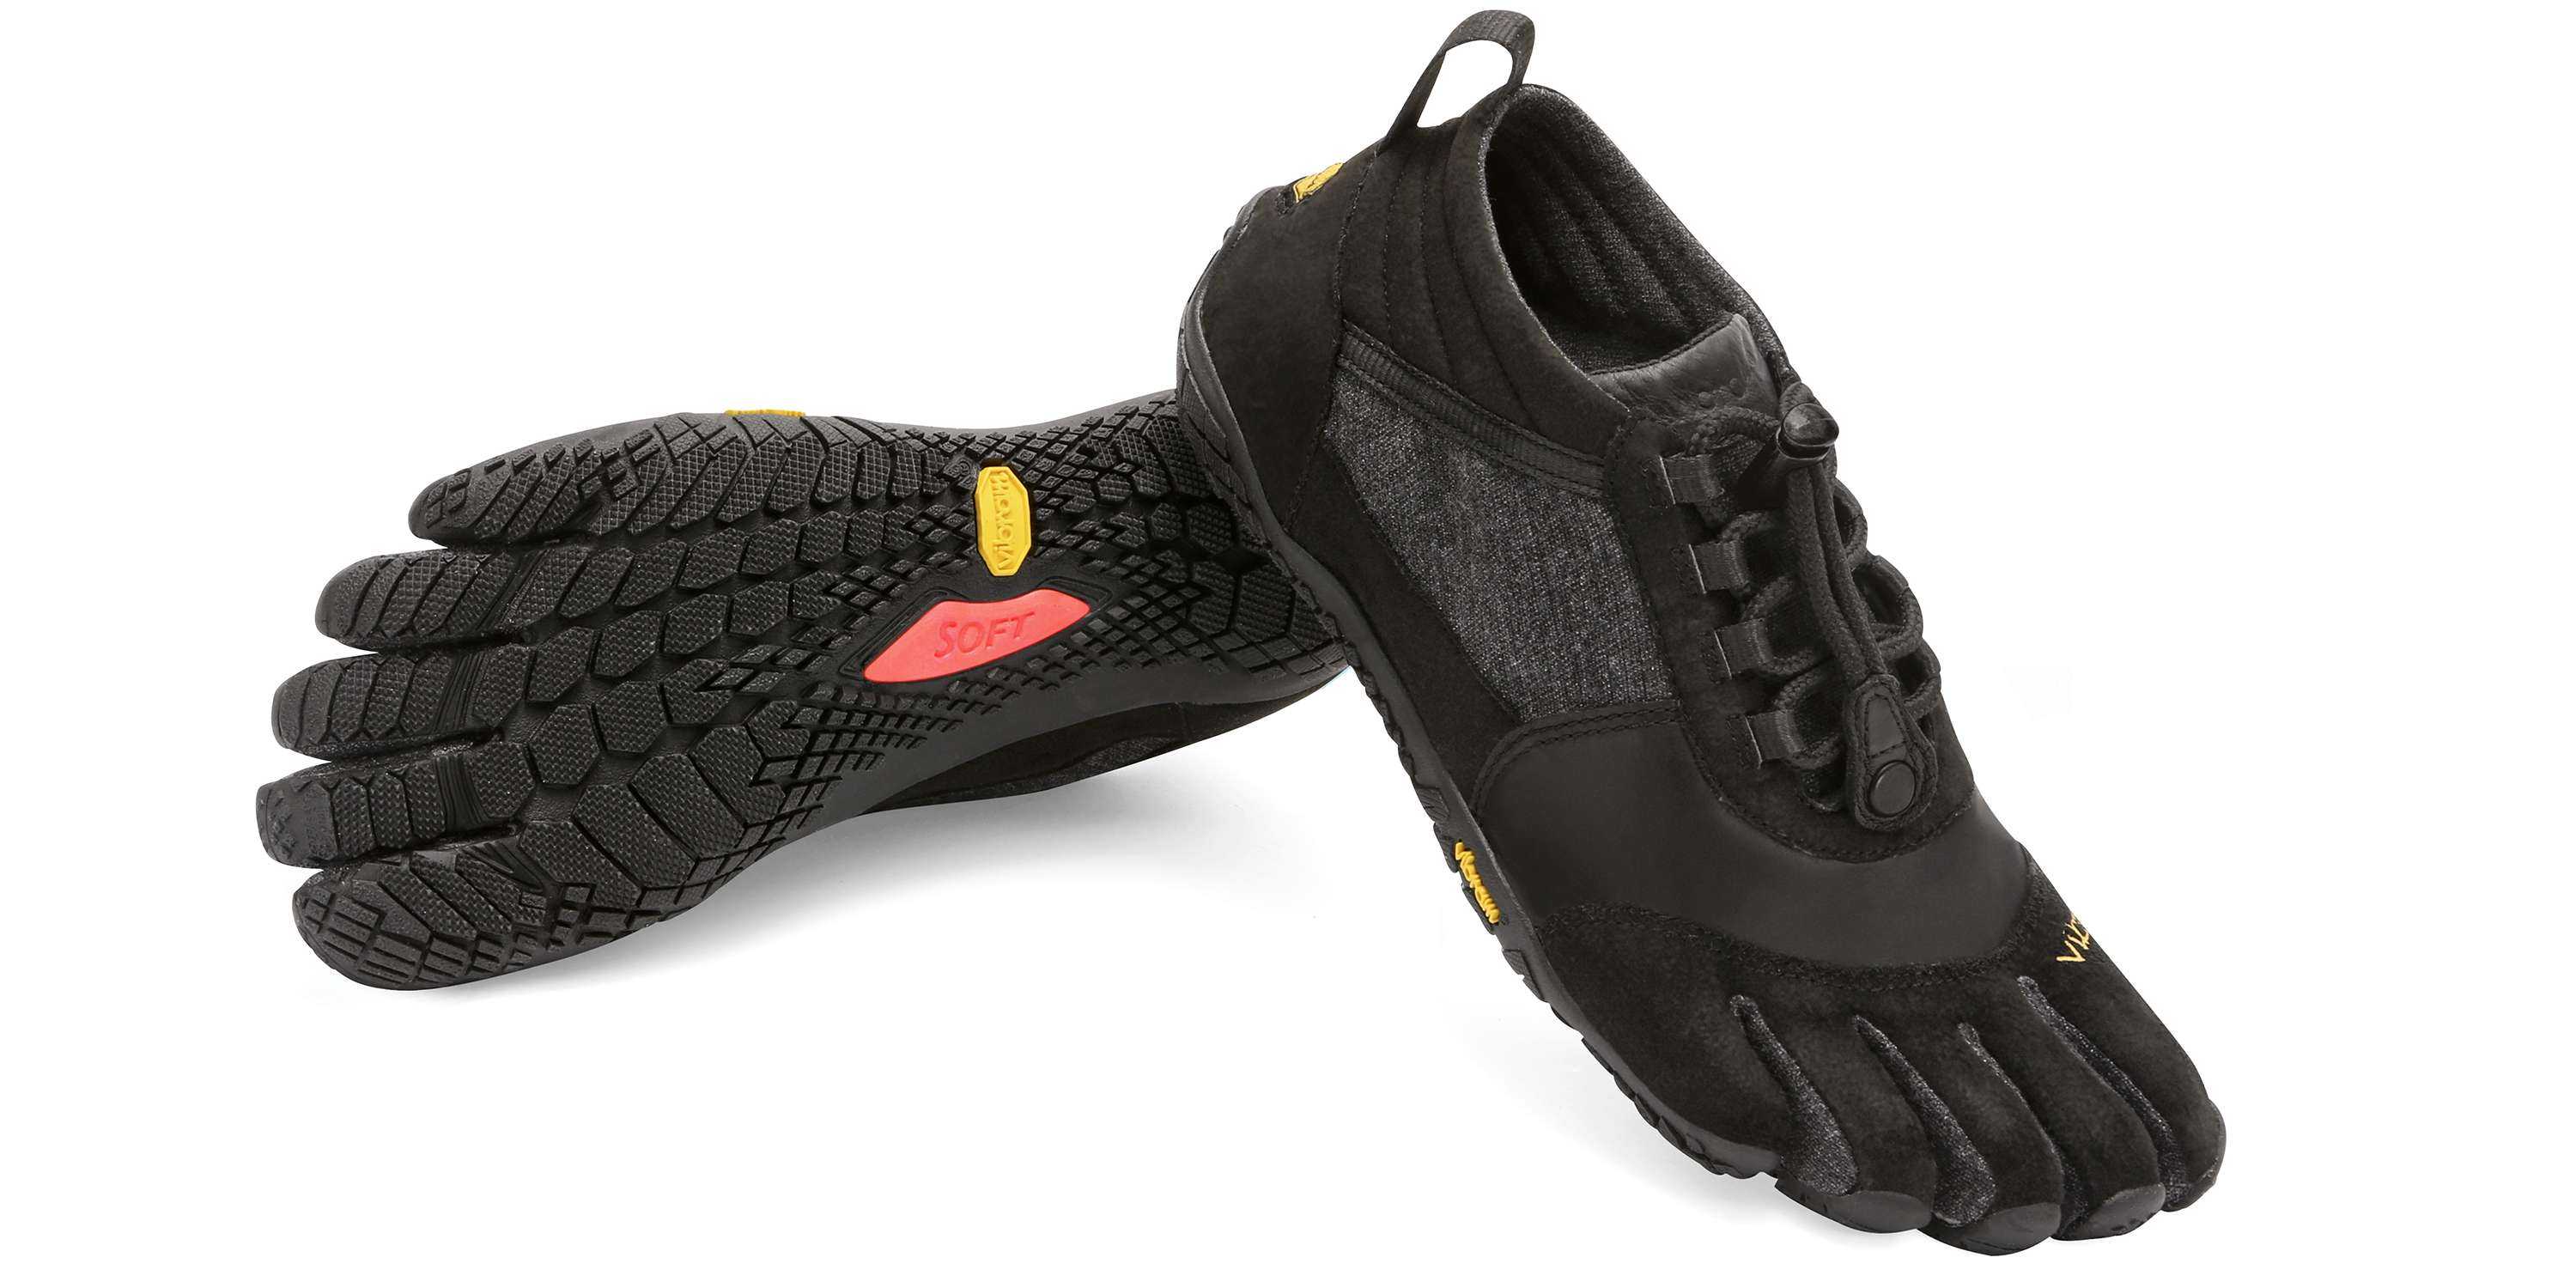 Fivefingers Trek Ascent